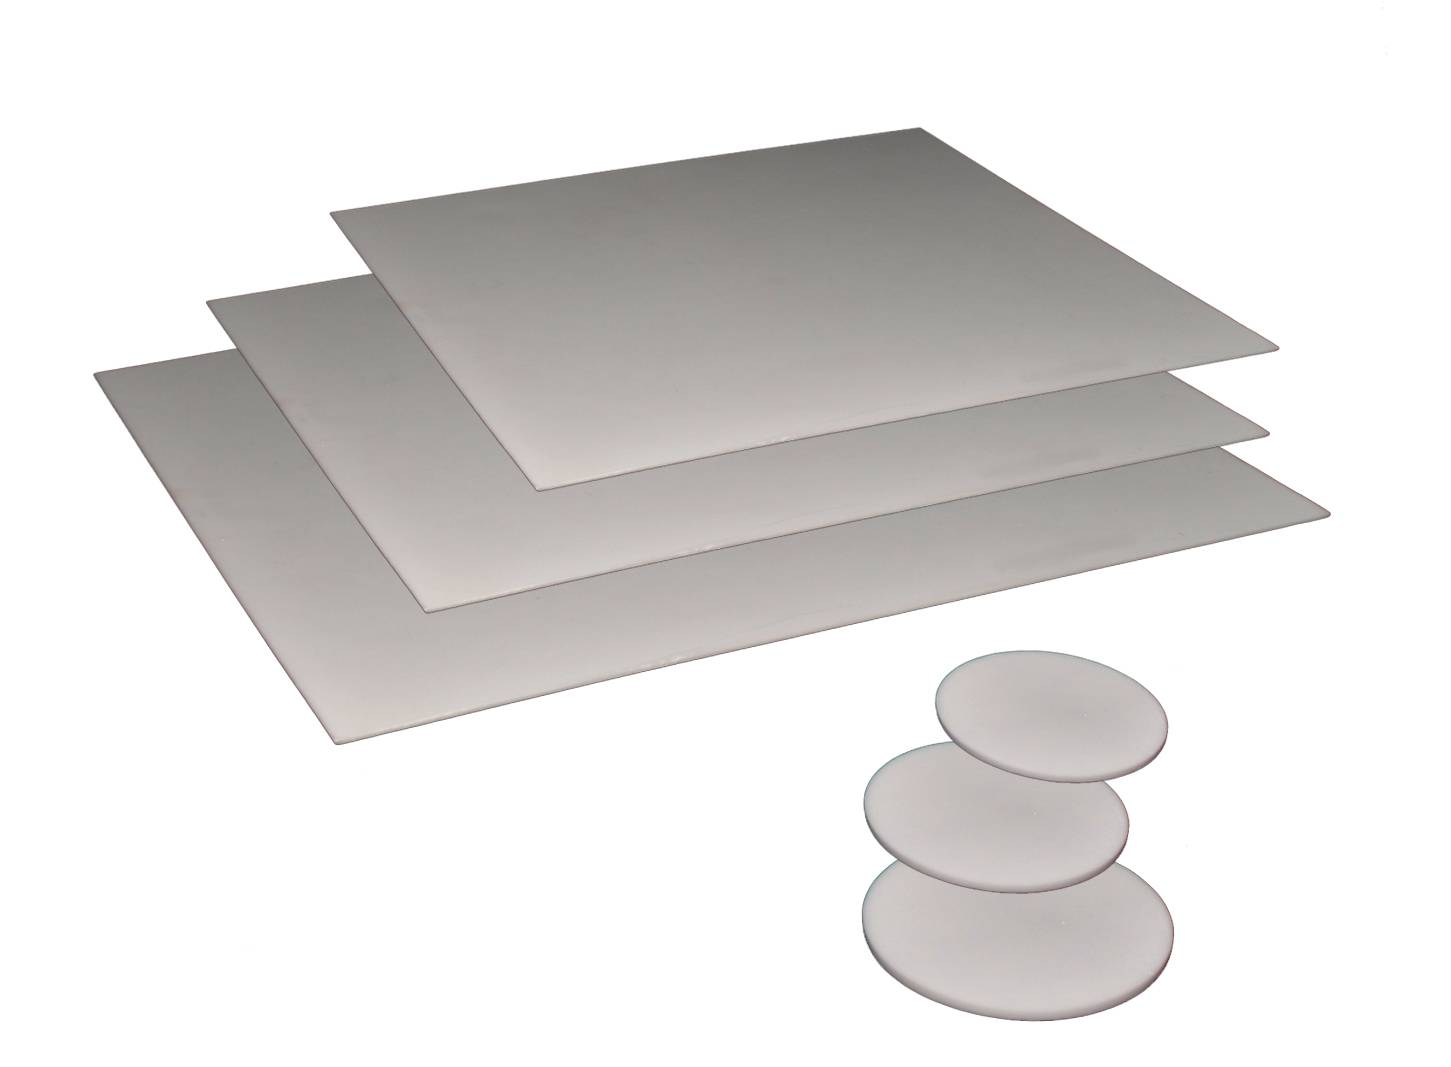 Laser Cut to Size Alumina Tiles and Discs